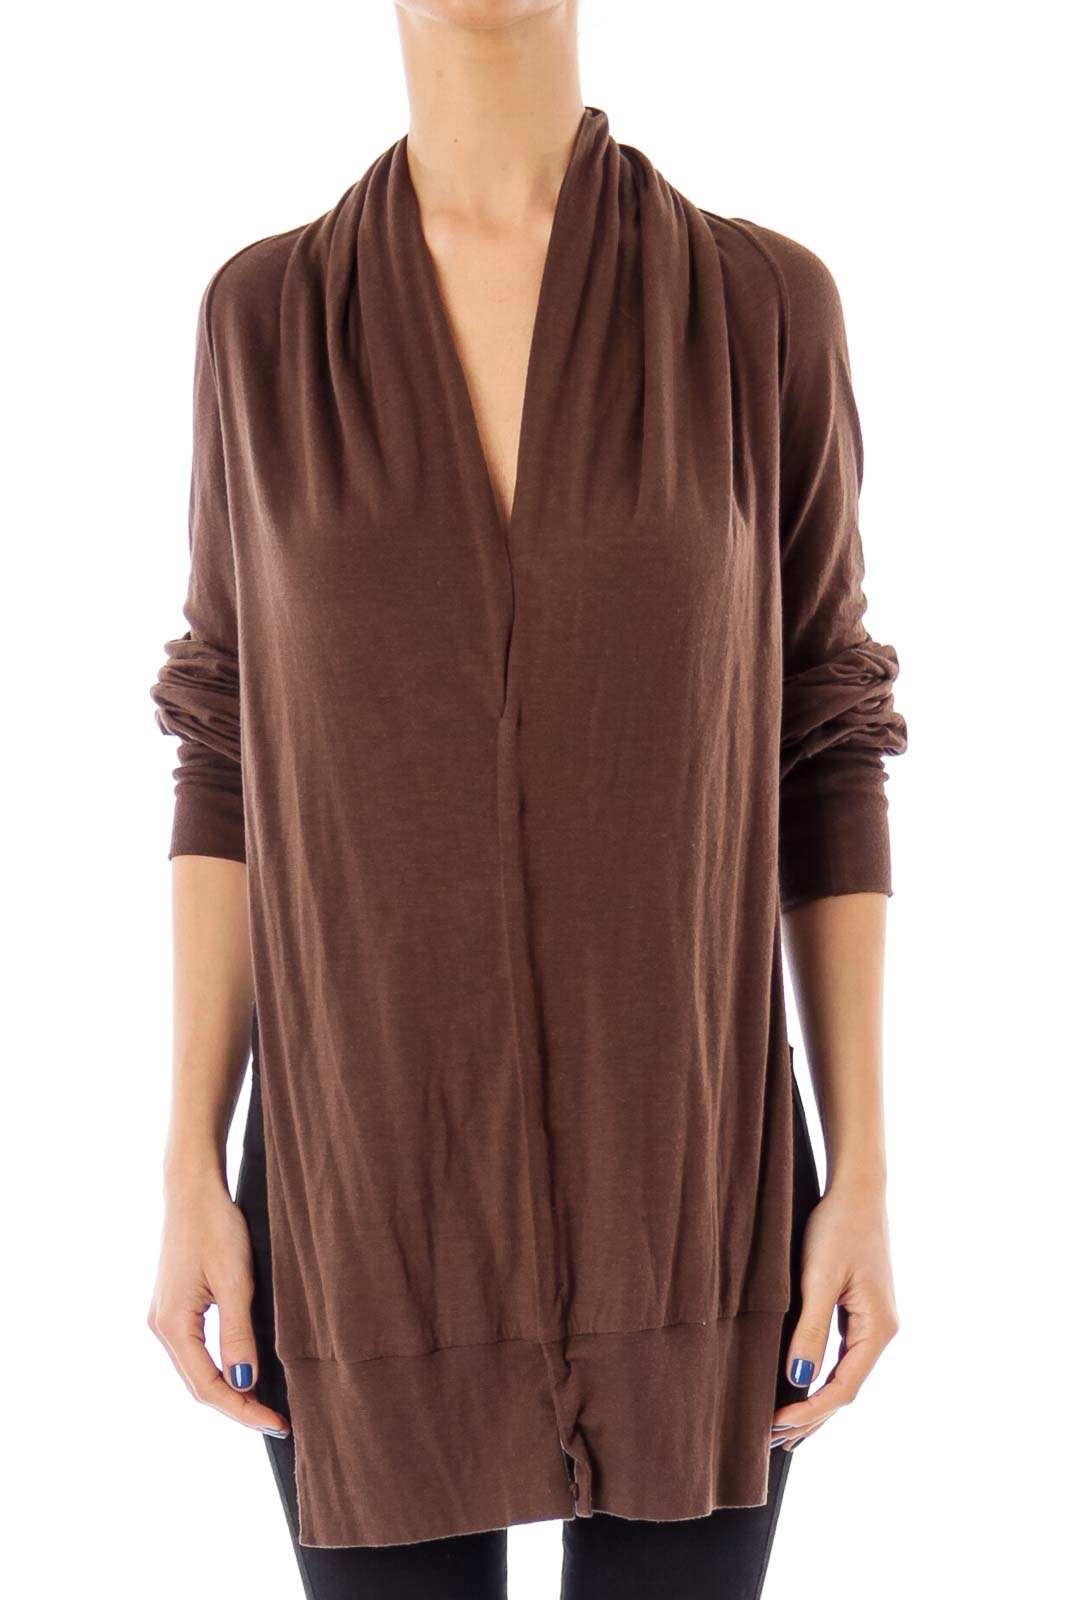 Brown Cropped Knit Sweater Front